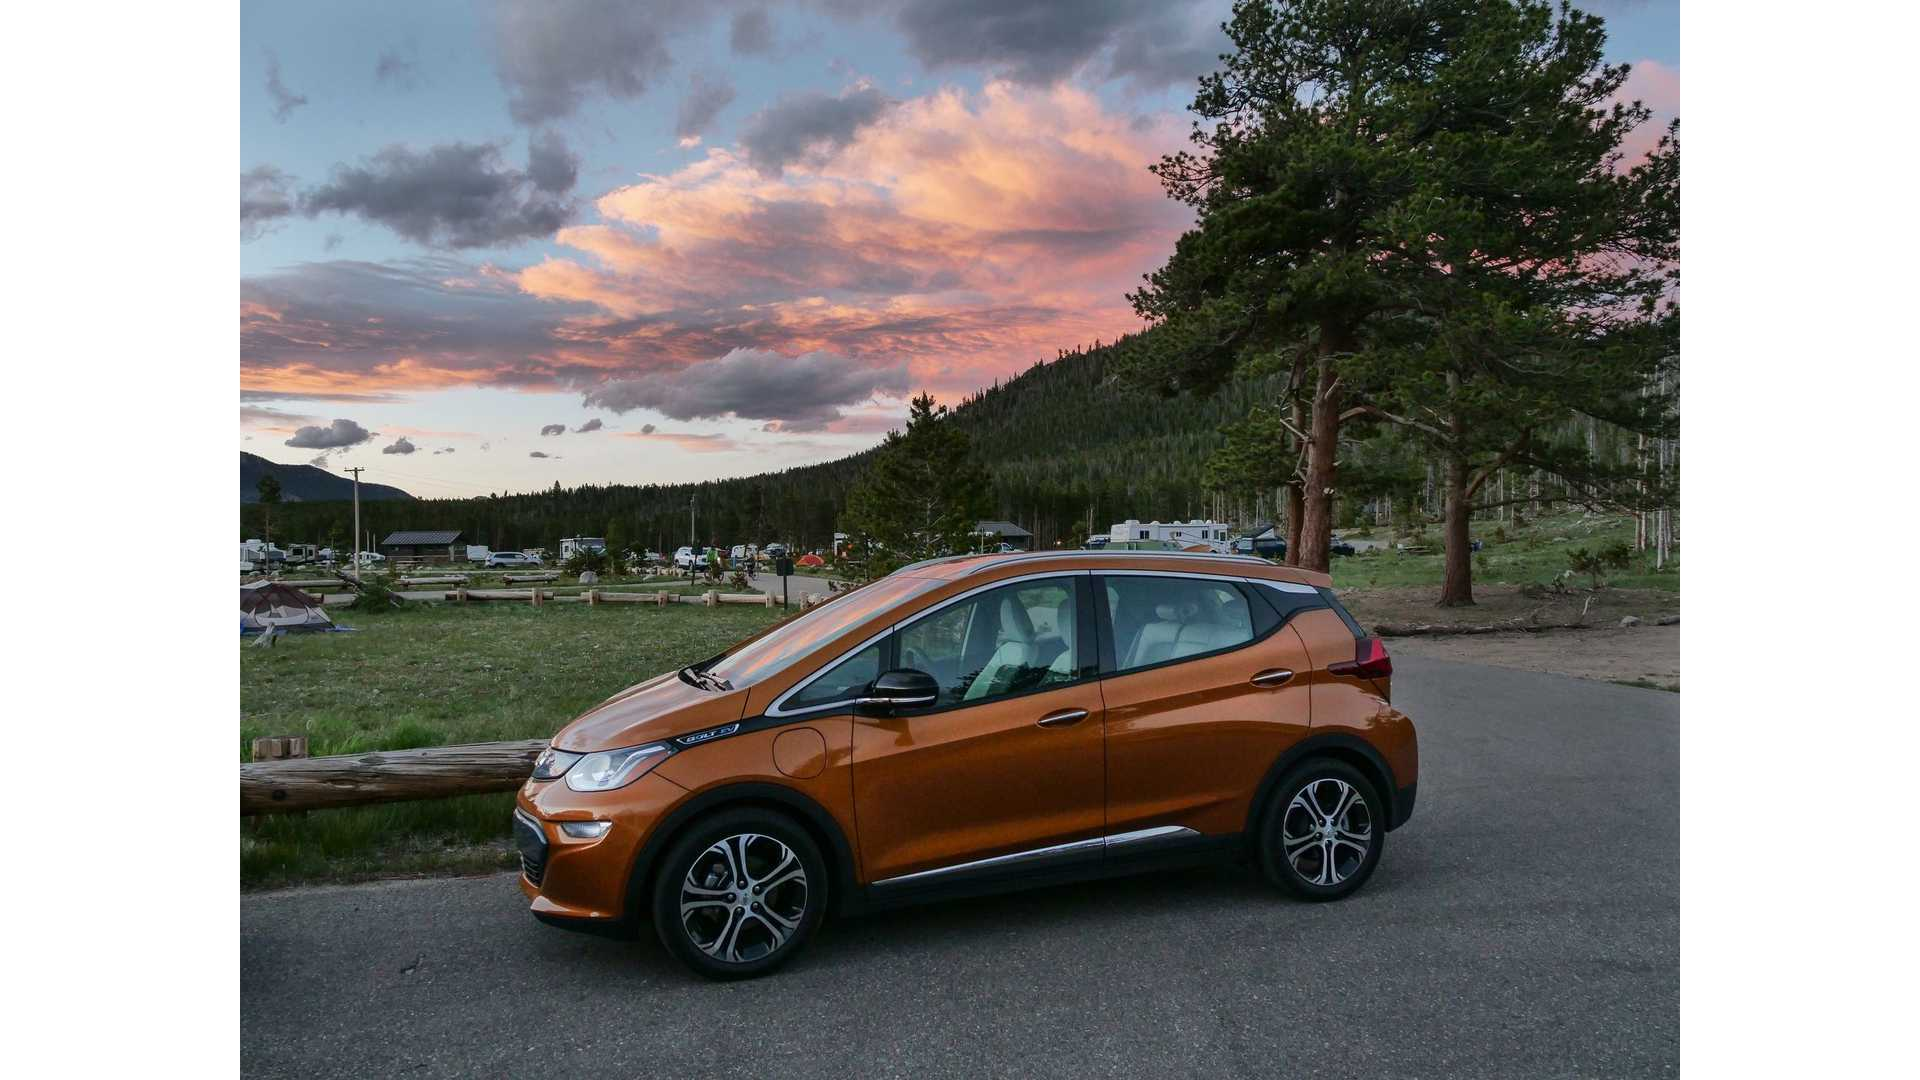 Chevy Bolt Ev Lease Discounts Popping Up But There S A Catch